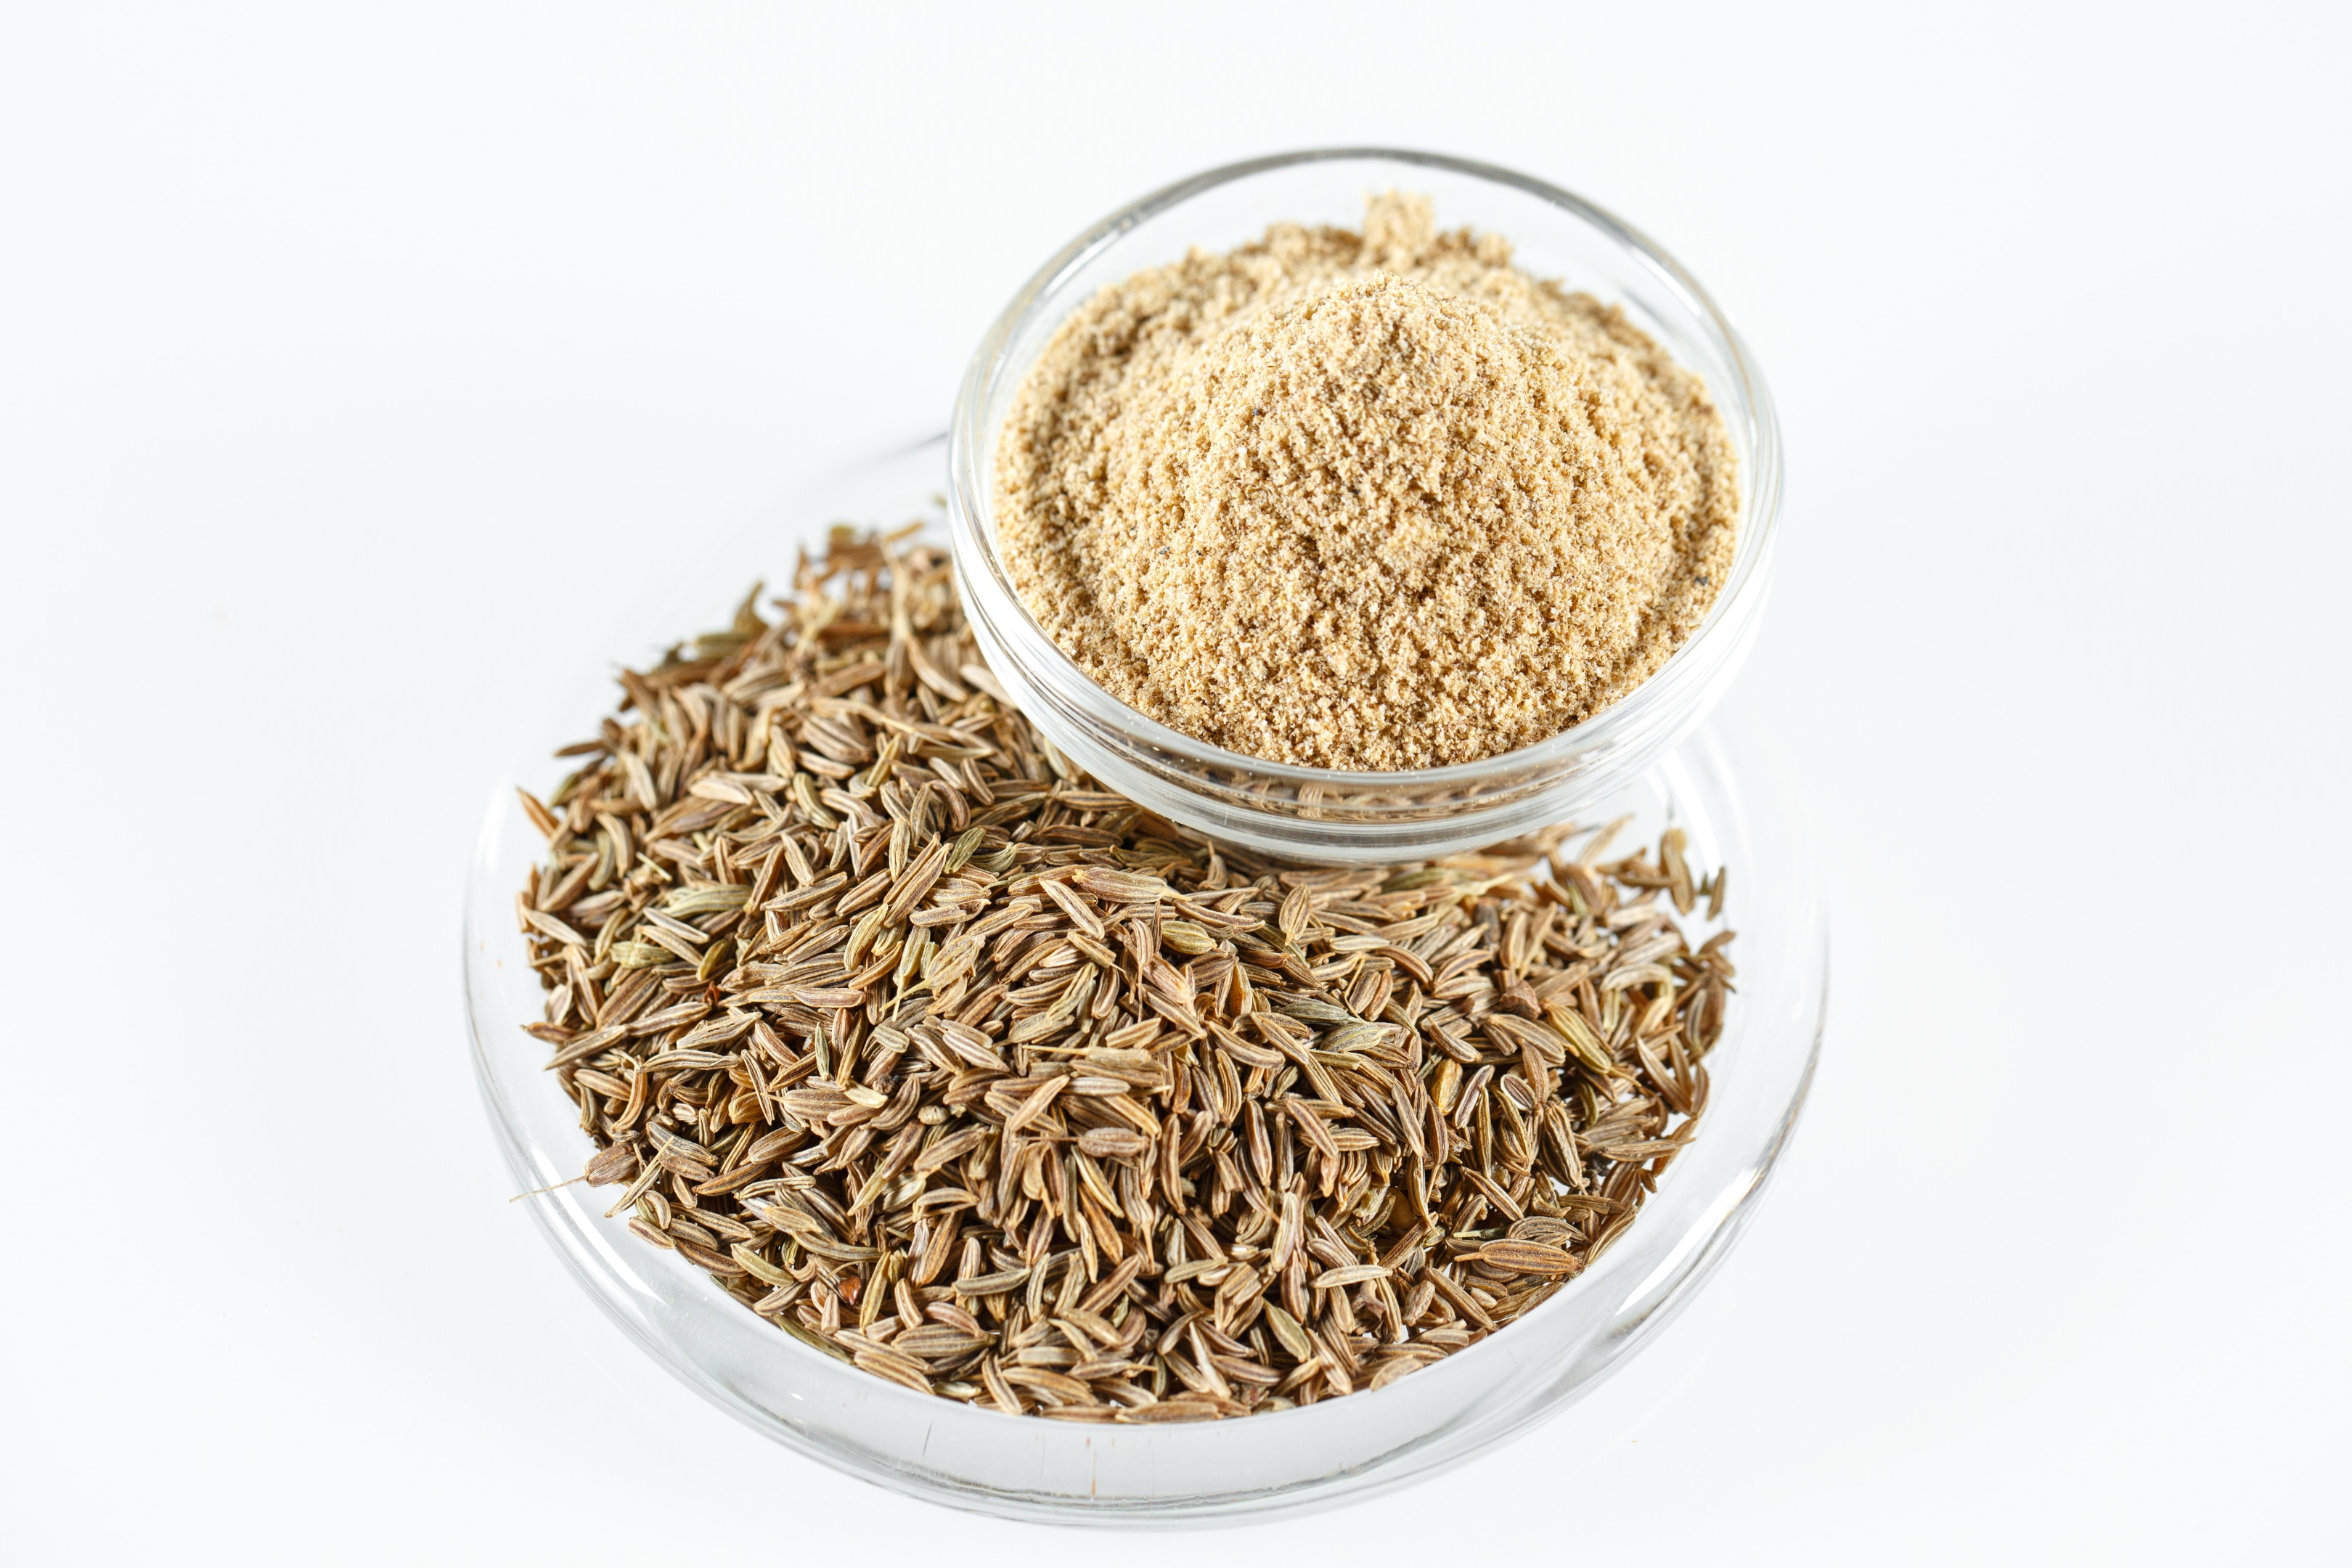 Cumin seeds and ground cumin in bowls